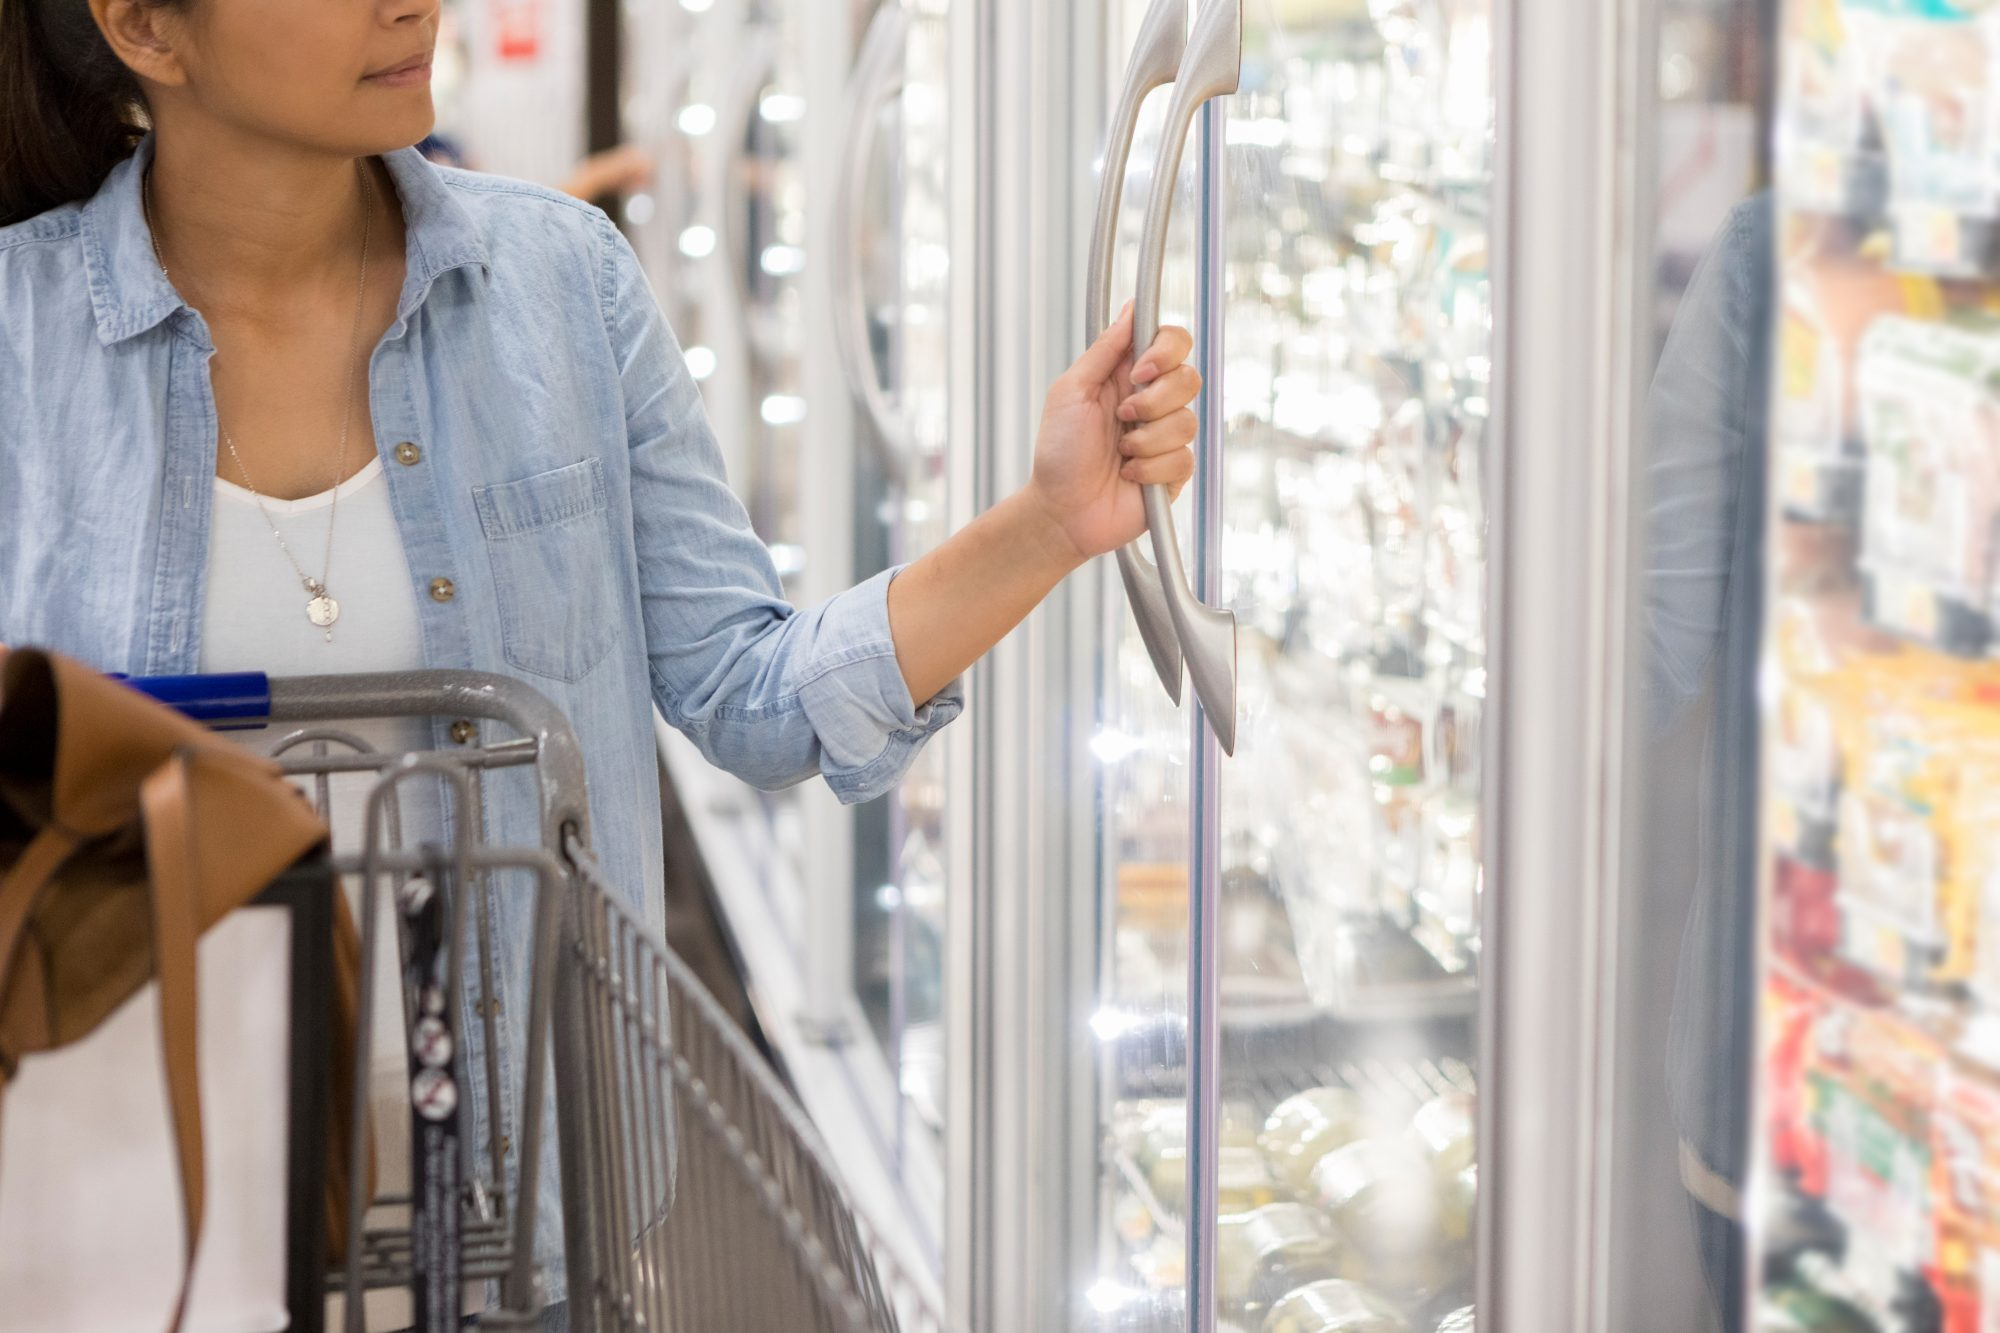 Mid adult woman opens door refrigerator door in supermarket.